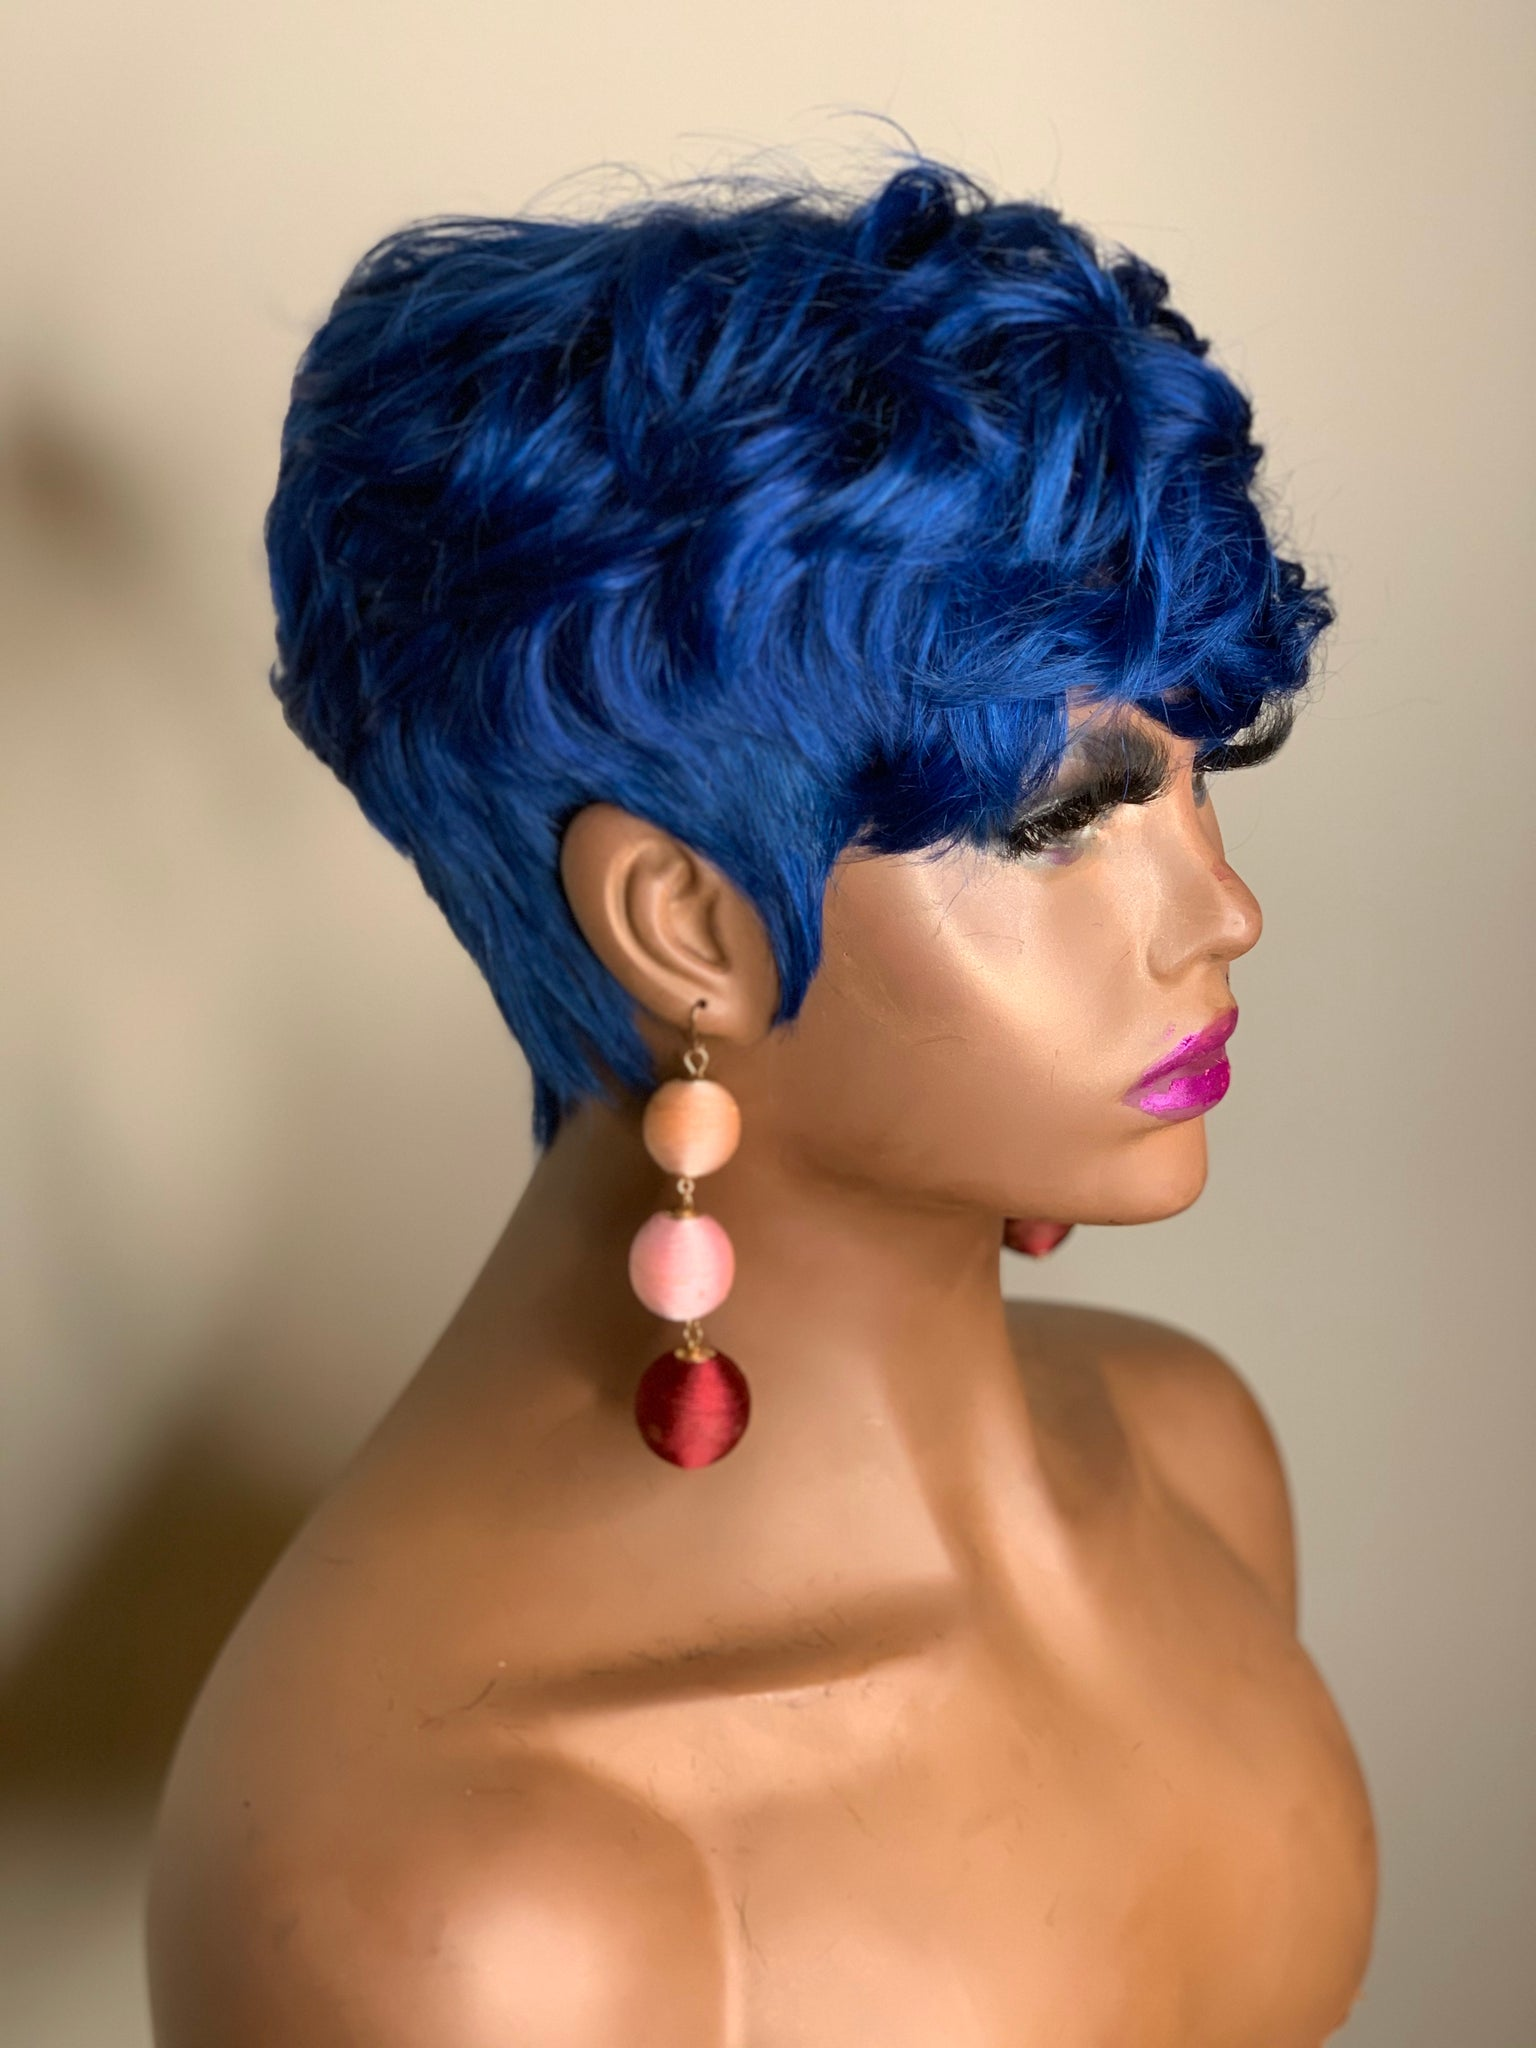 Tammy Short Style Human Hair Wig Coverinz Wigs Extensions